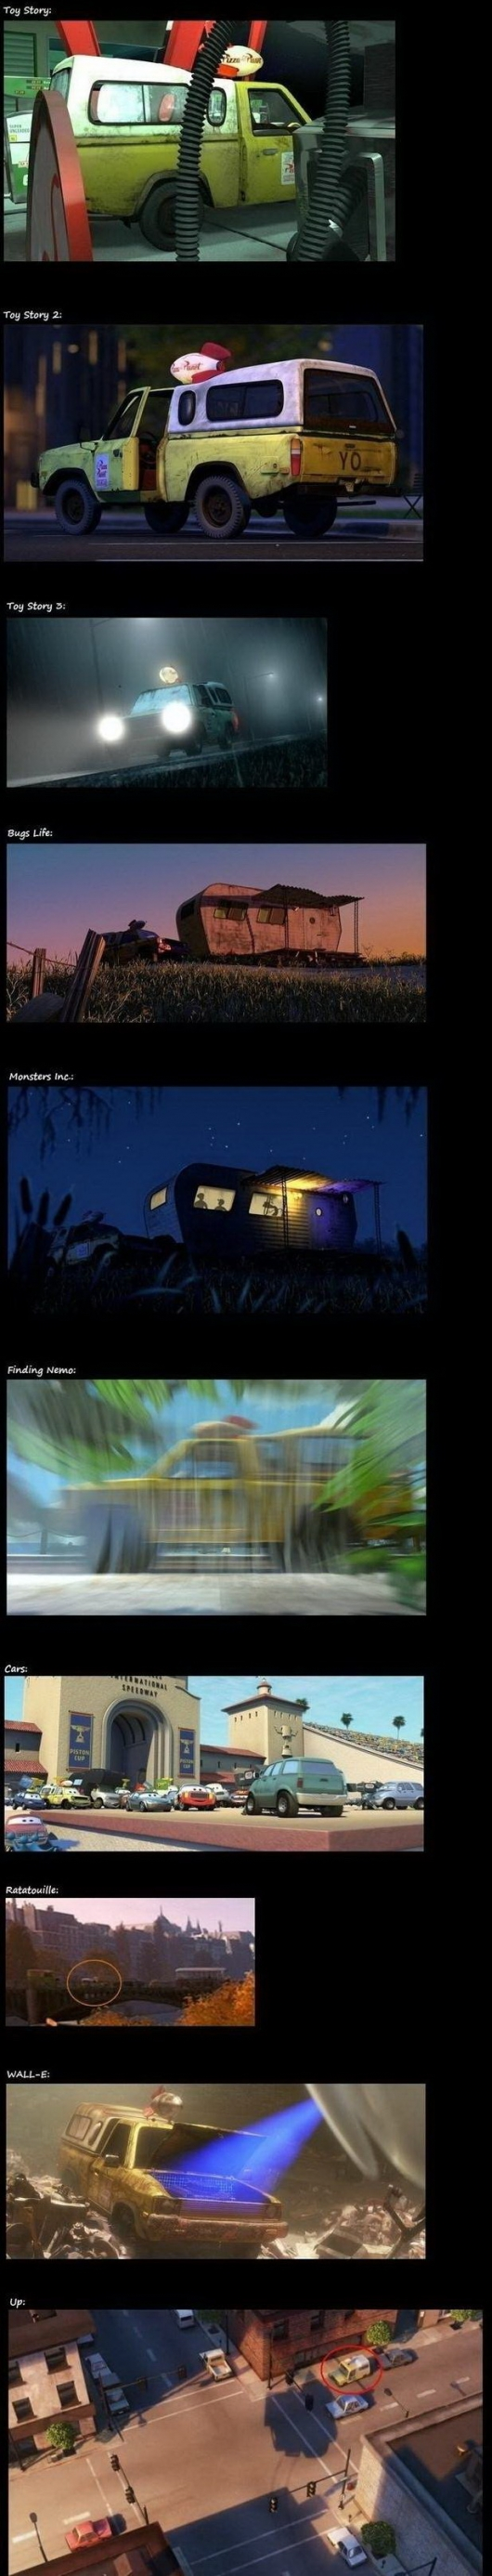 The Pizza Planet Truck Appearances In Pixar Movies